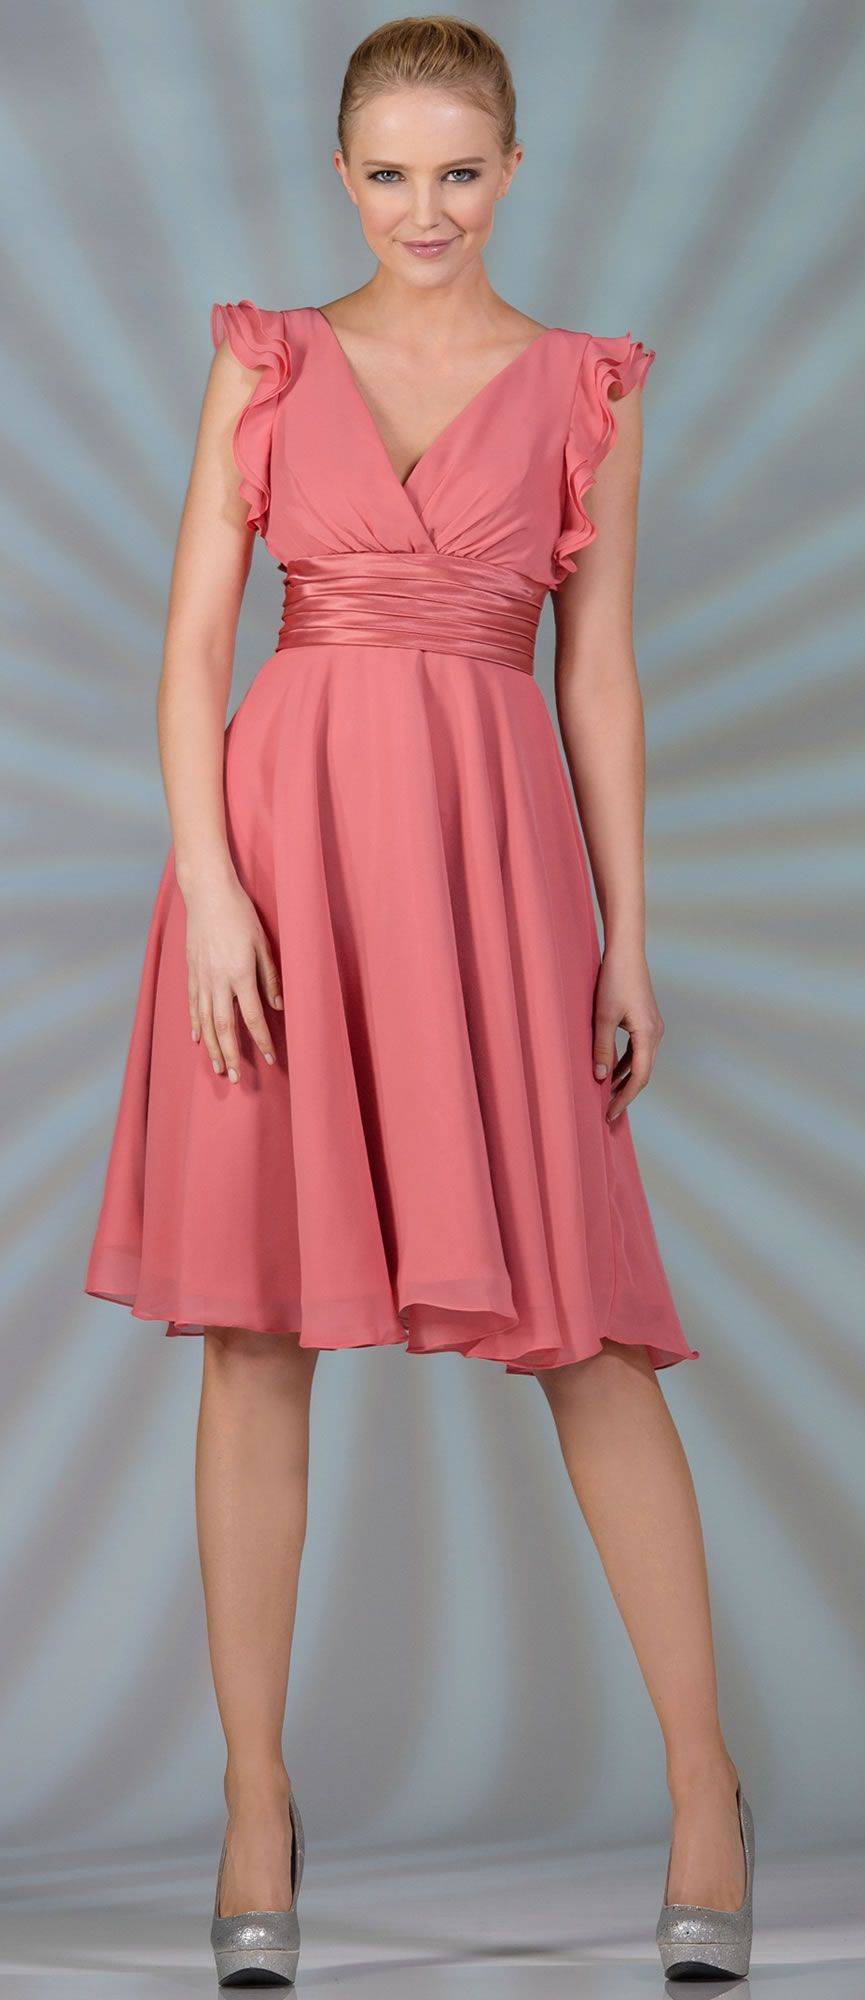 Coral formal short dress with wide sleeves colors xs to xl